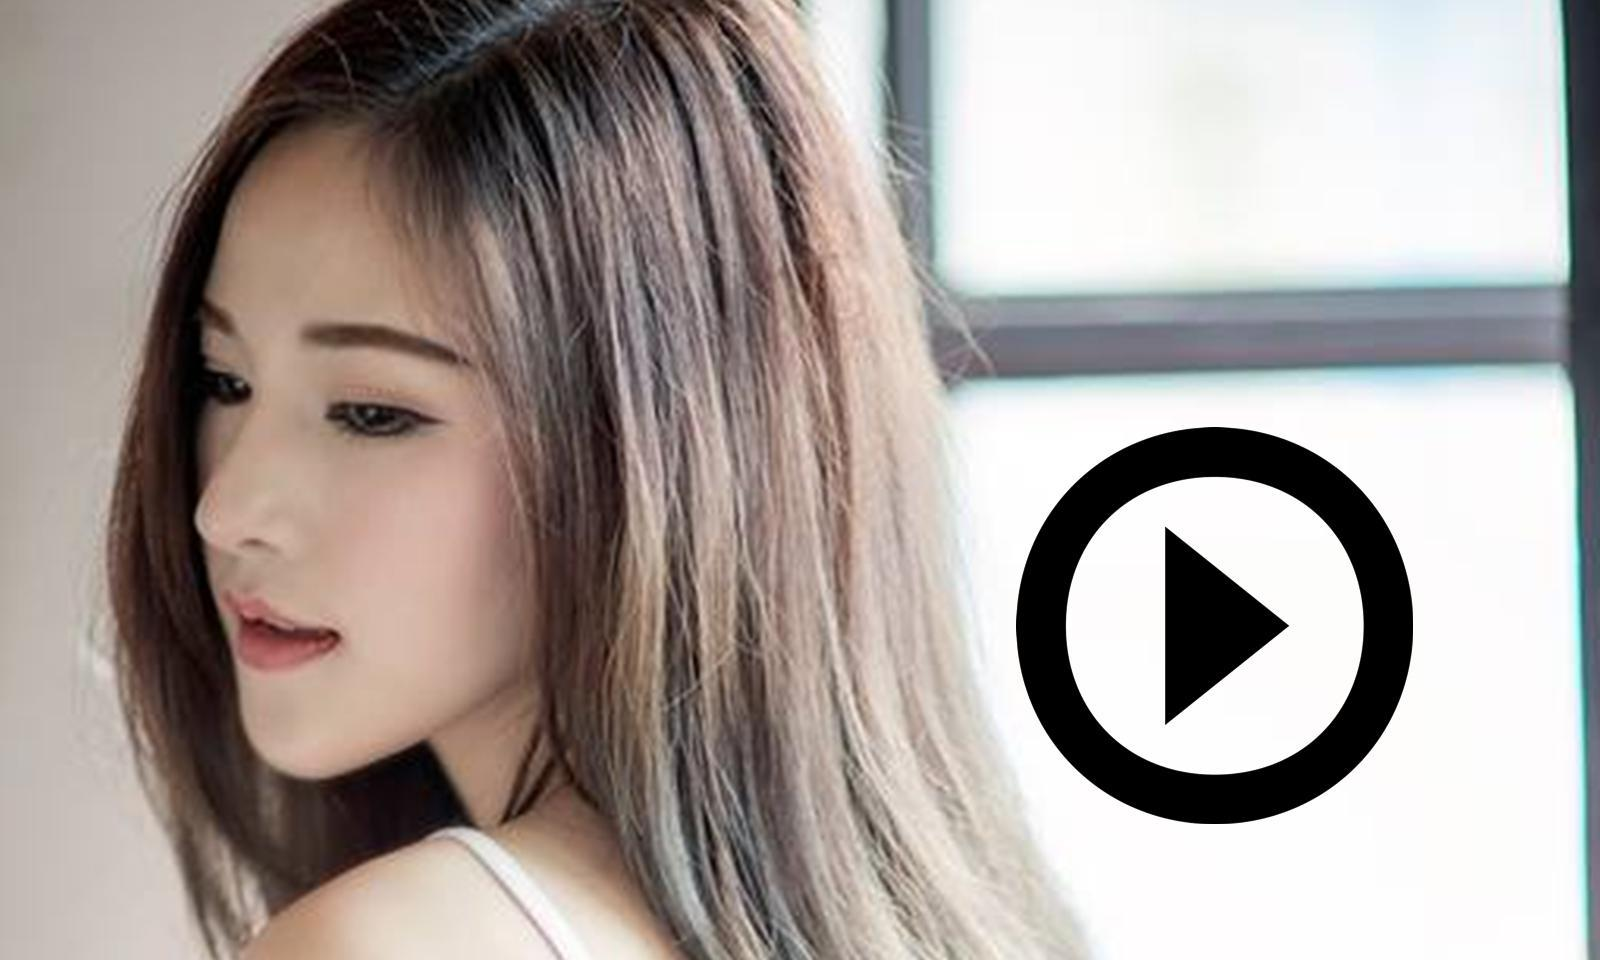 Bokep Hot Video Indonesia Advise for Android - APK Download